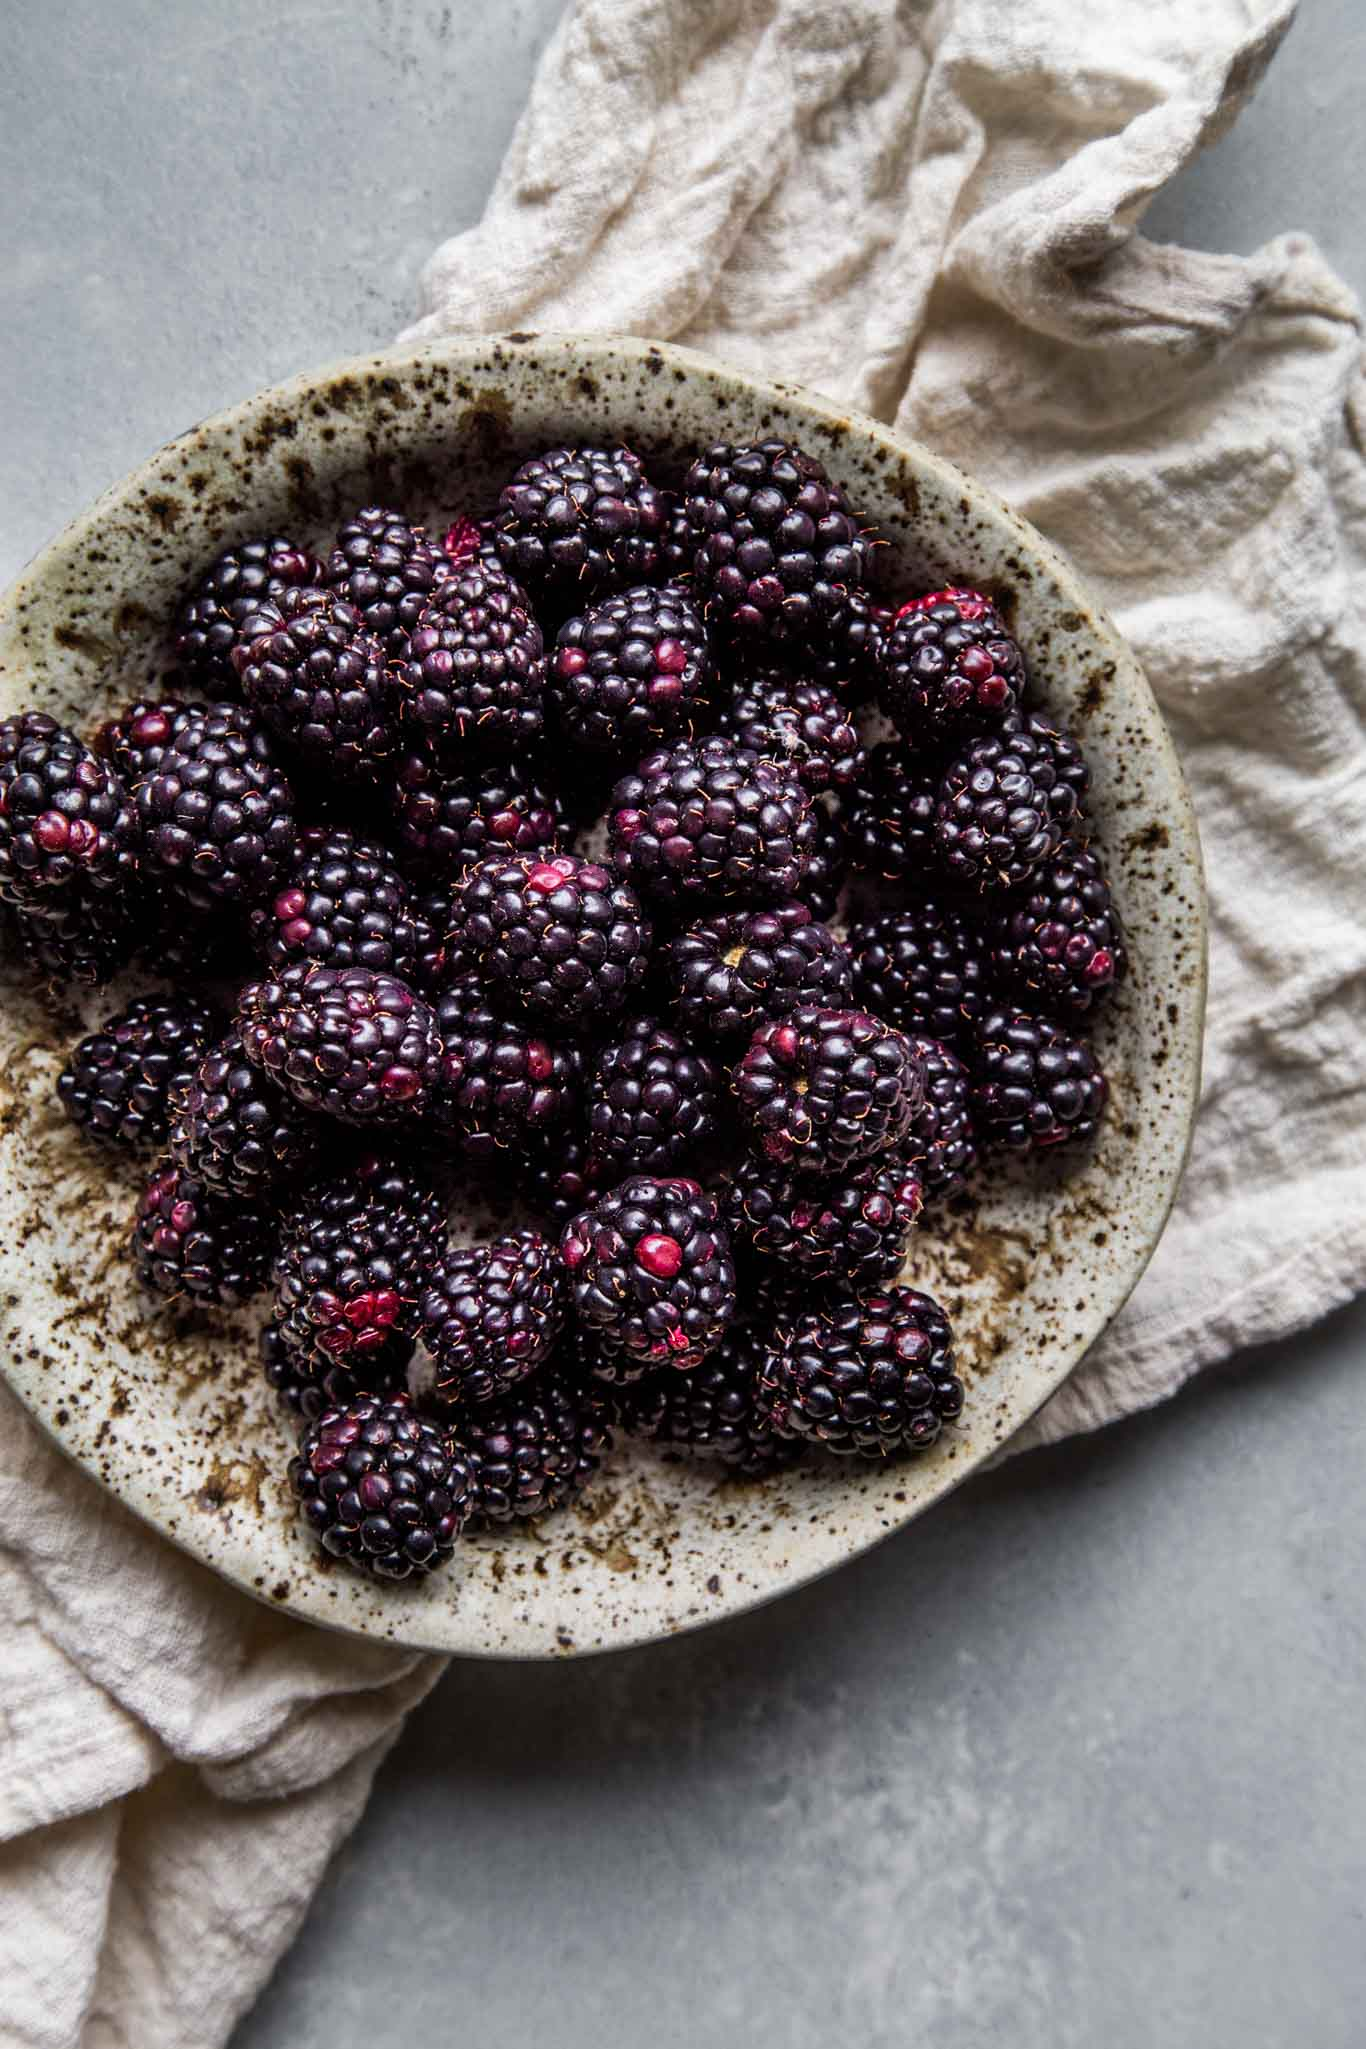 Blackberries in speckled bowl.